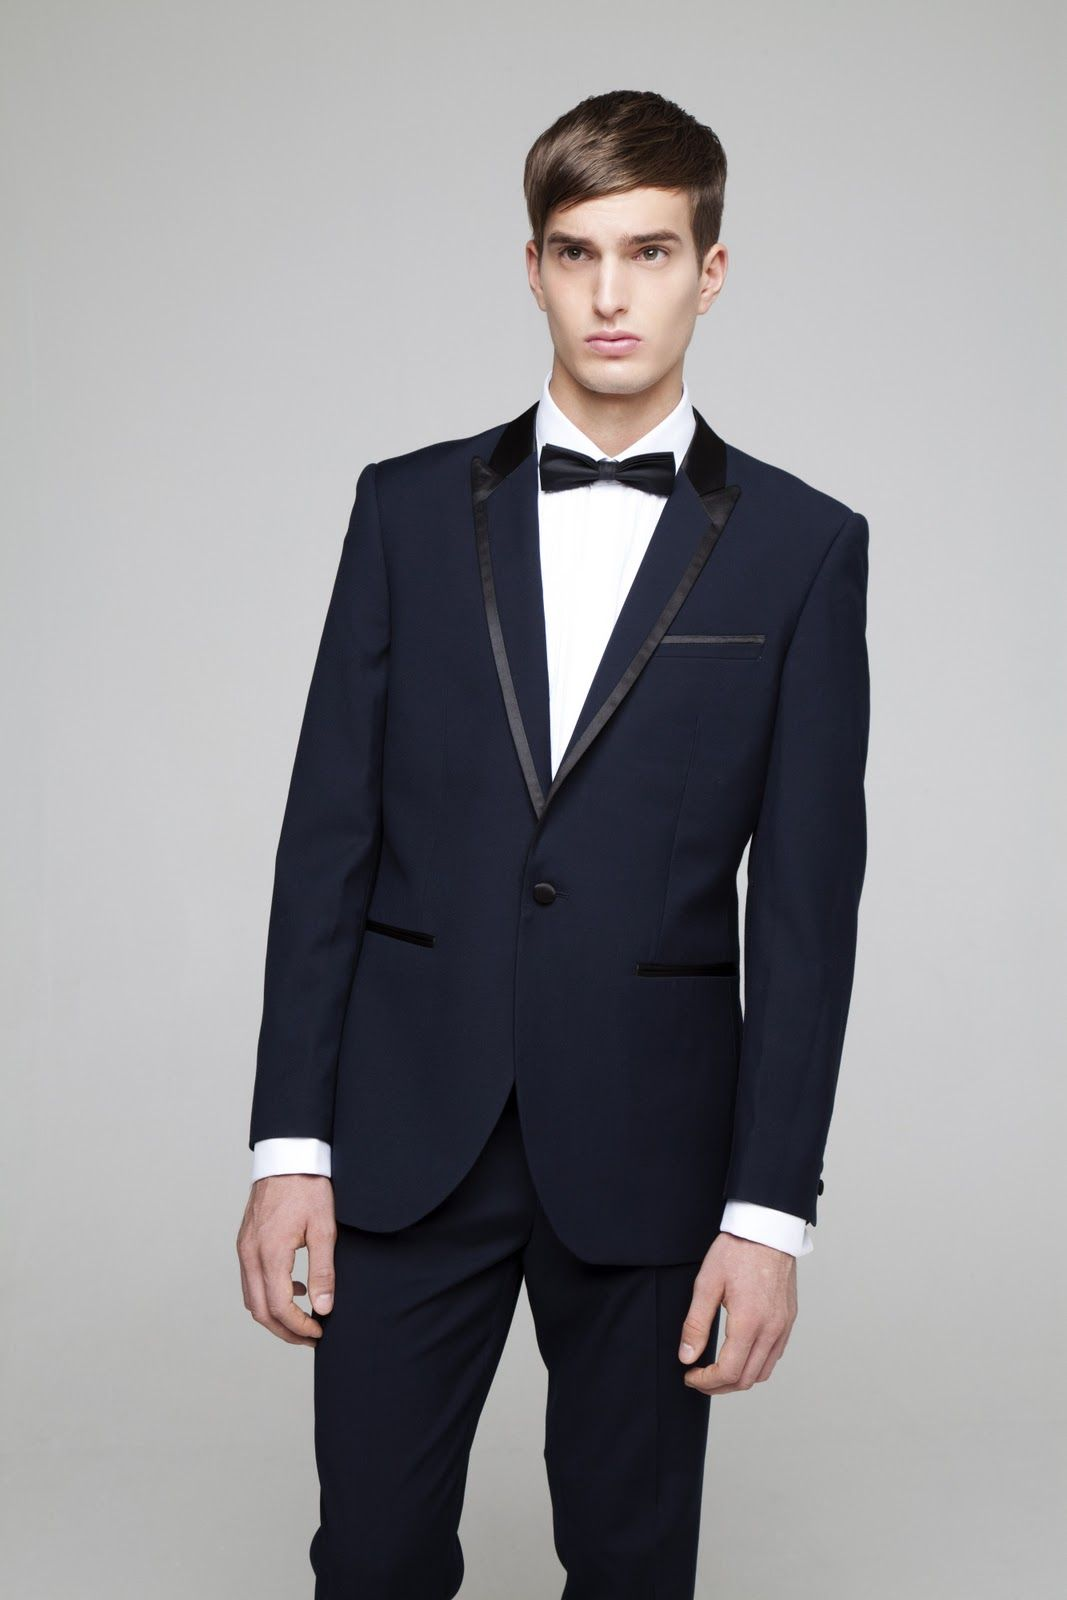 unparalleled customers first dependable performance men's styling: Black Tie Event - primark navy tux | Weddings ...